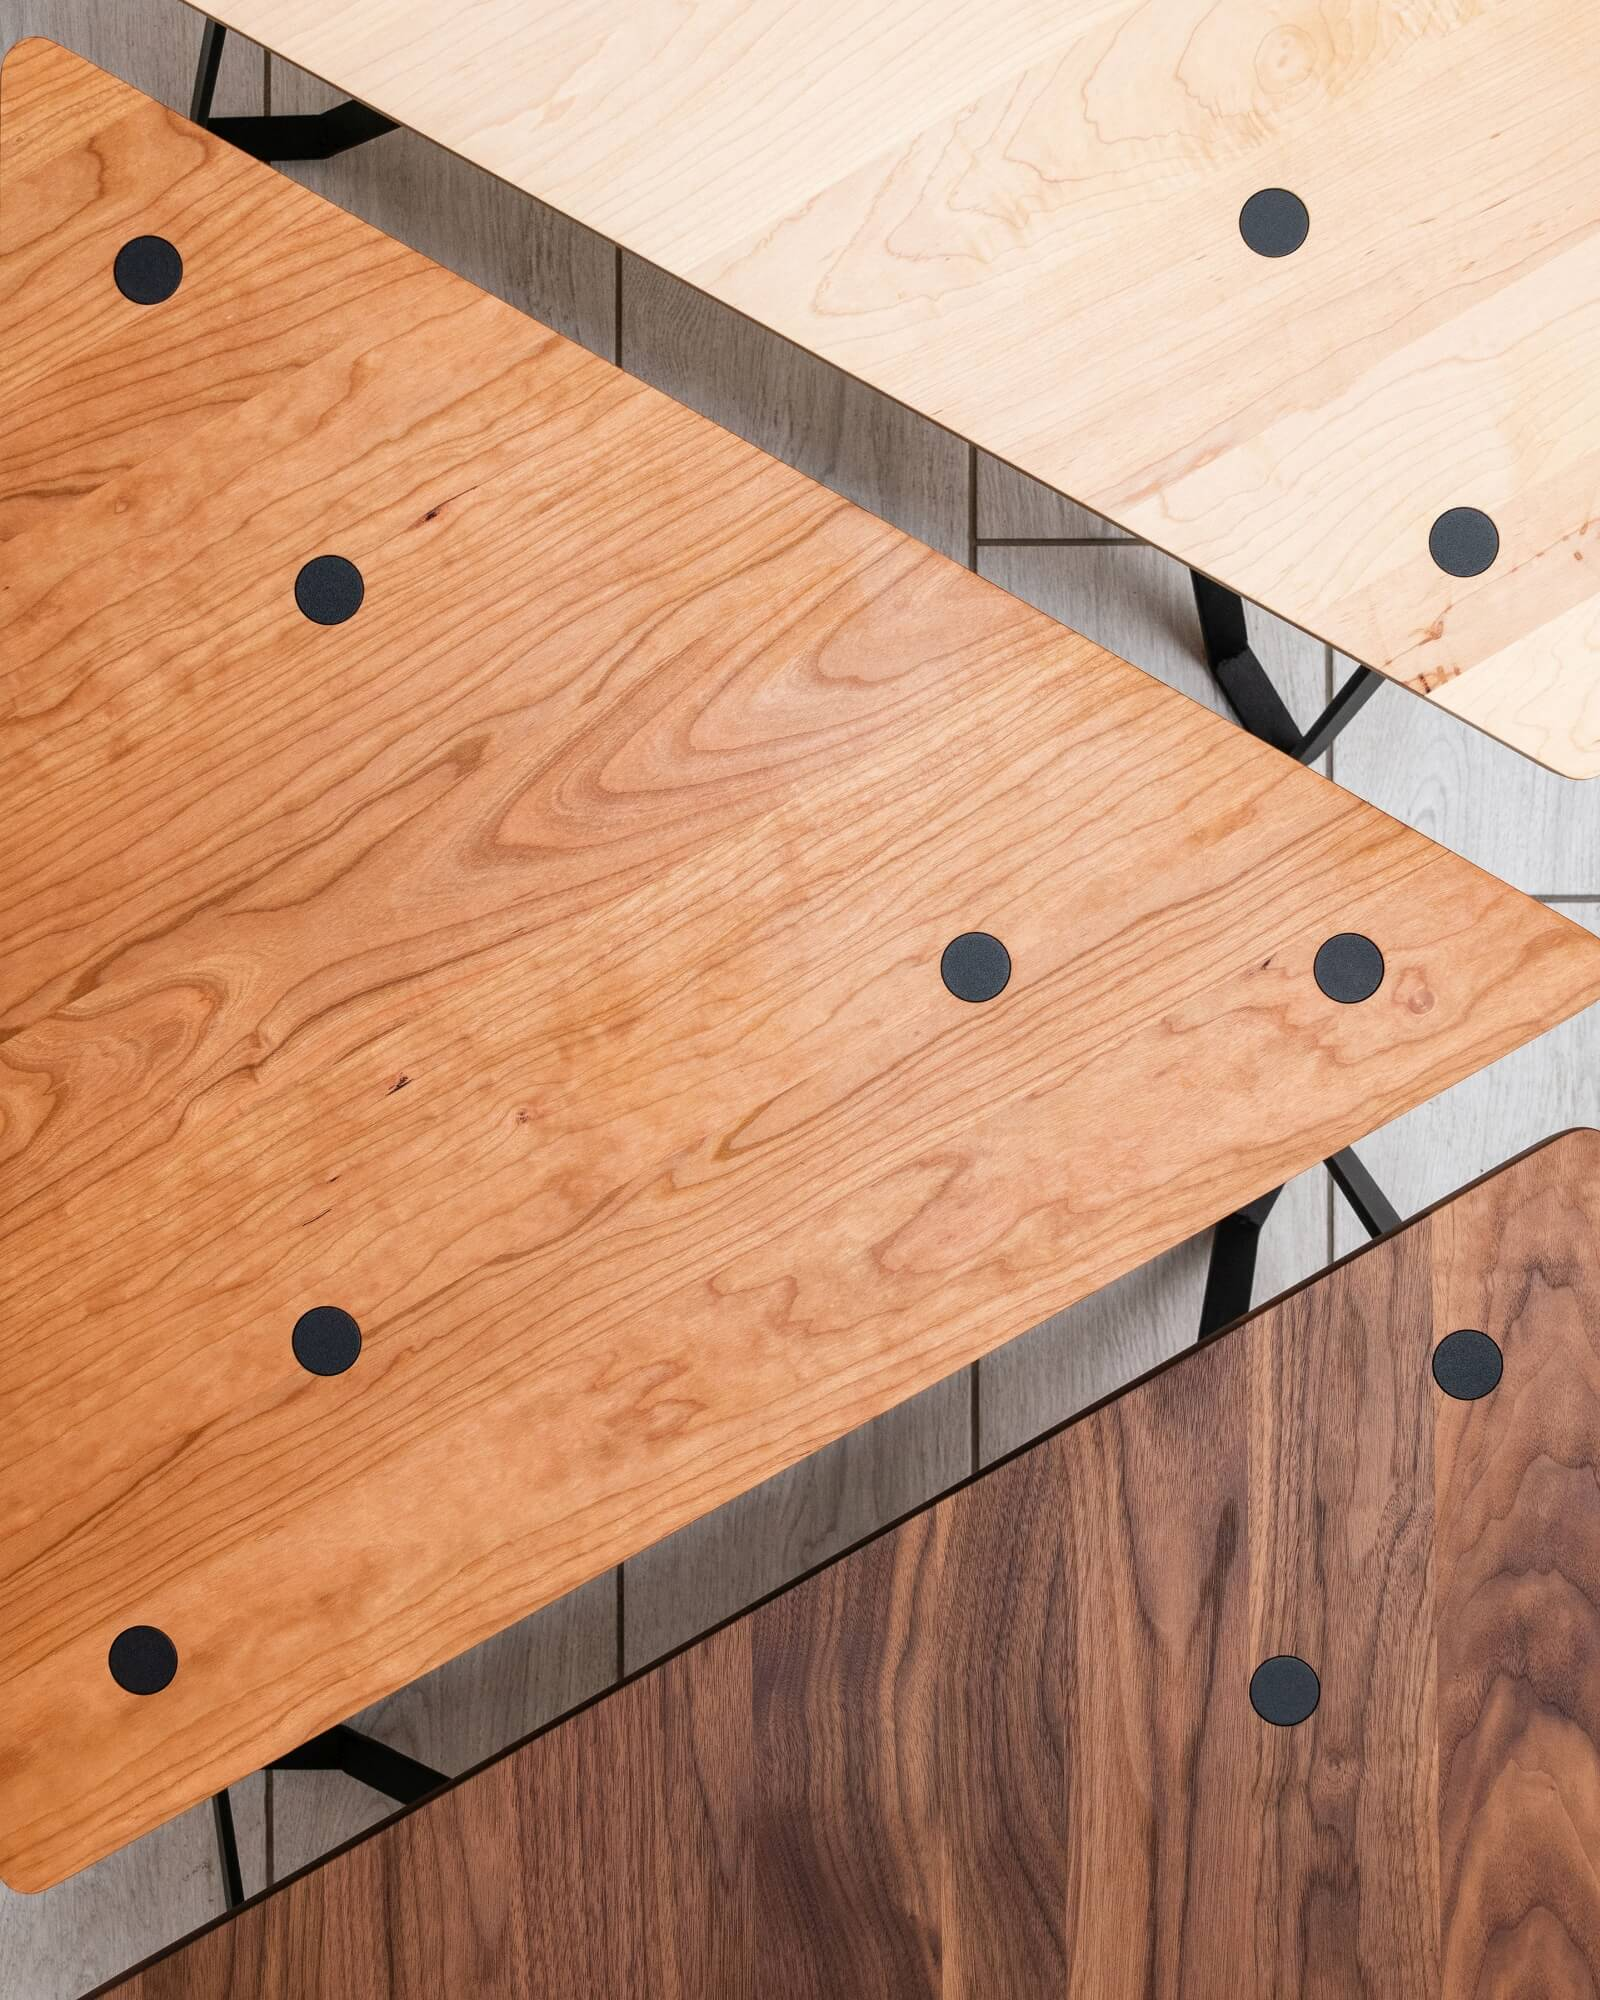 Geometric wood bench or coffee table made from various wood species.